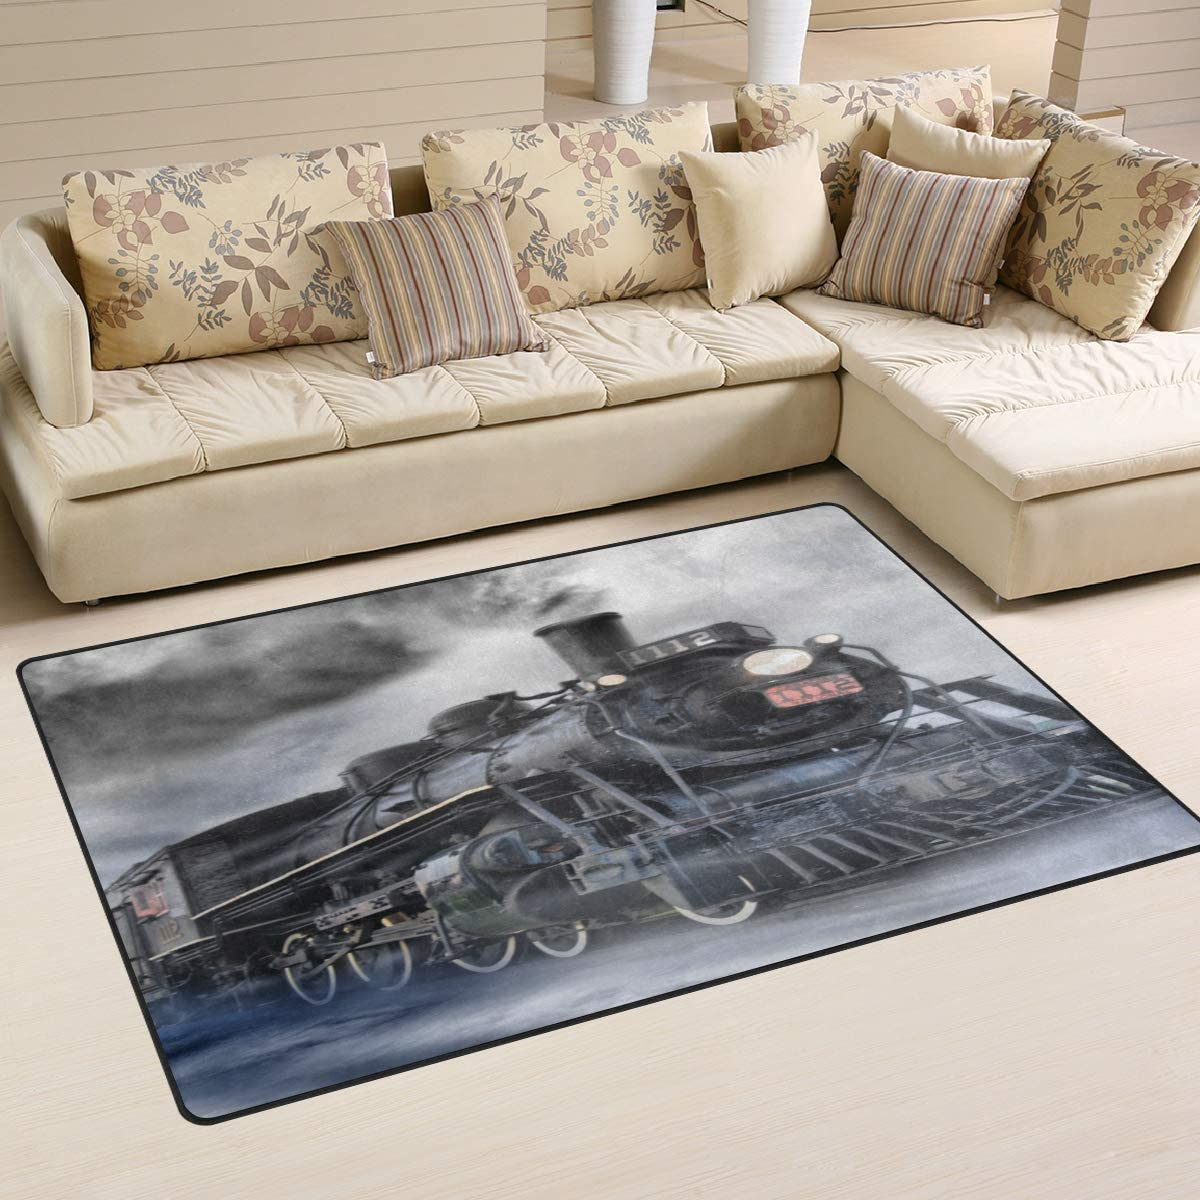 Linomo Area Rug Vintage Steam Train Floor Rugs Doormat Living Room Home Decor